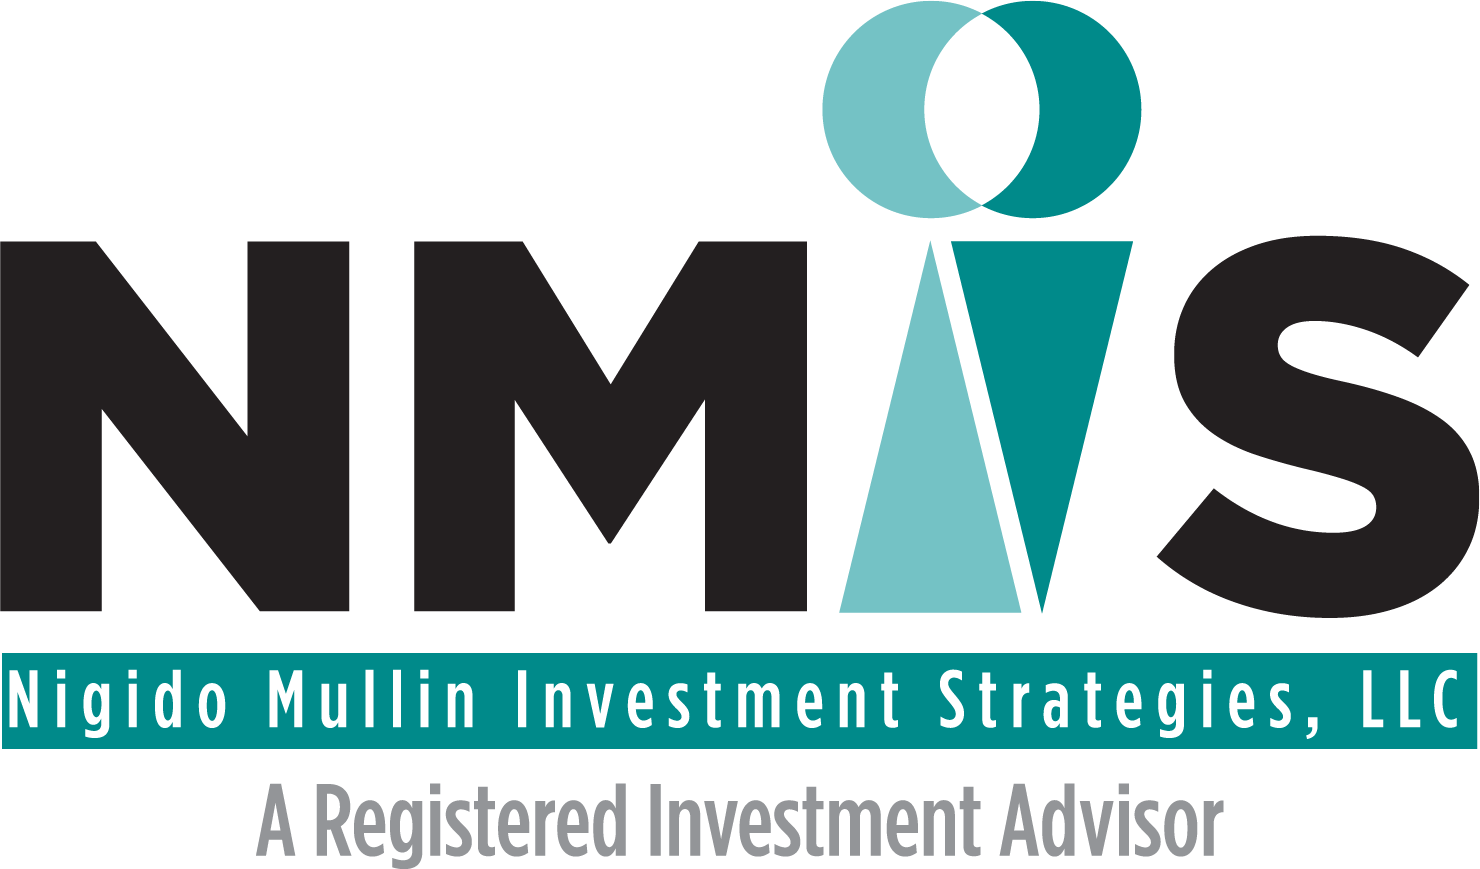 Logo for Nigido Mullin Investment Strategies, LLC